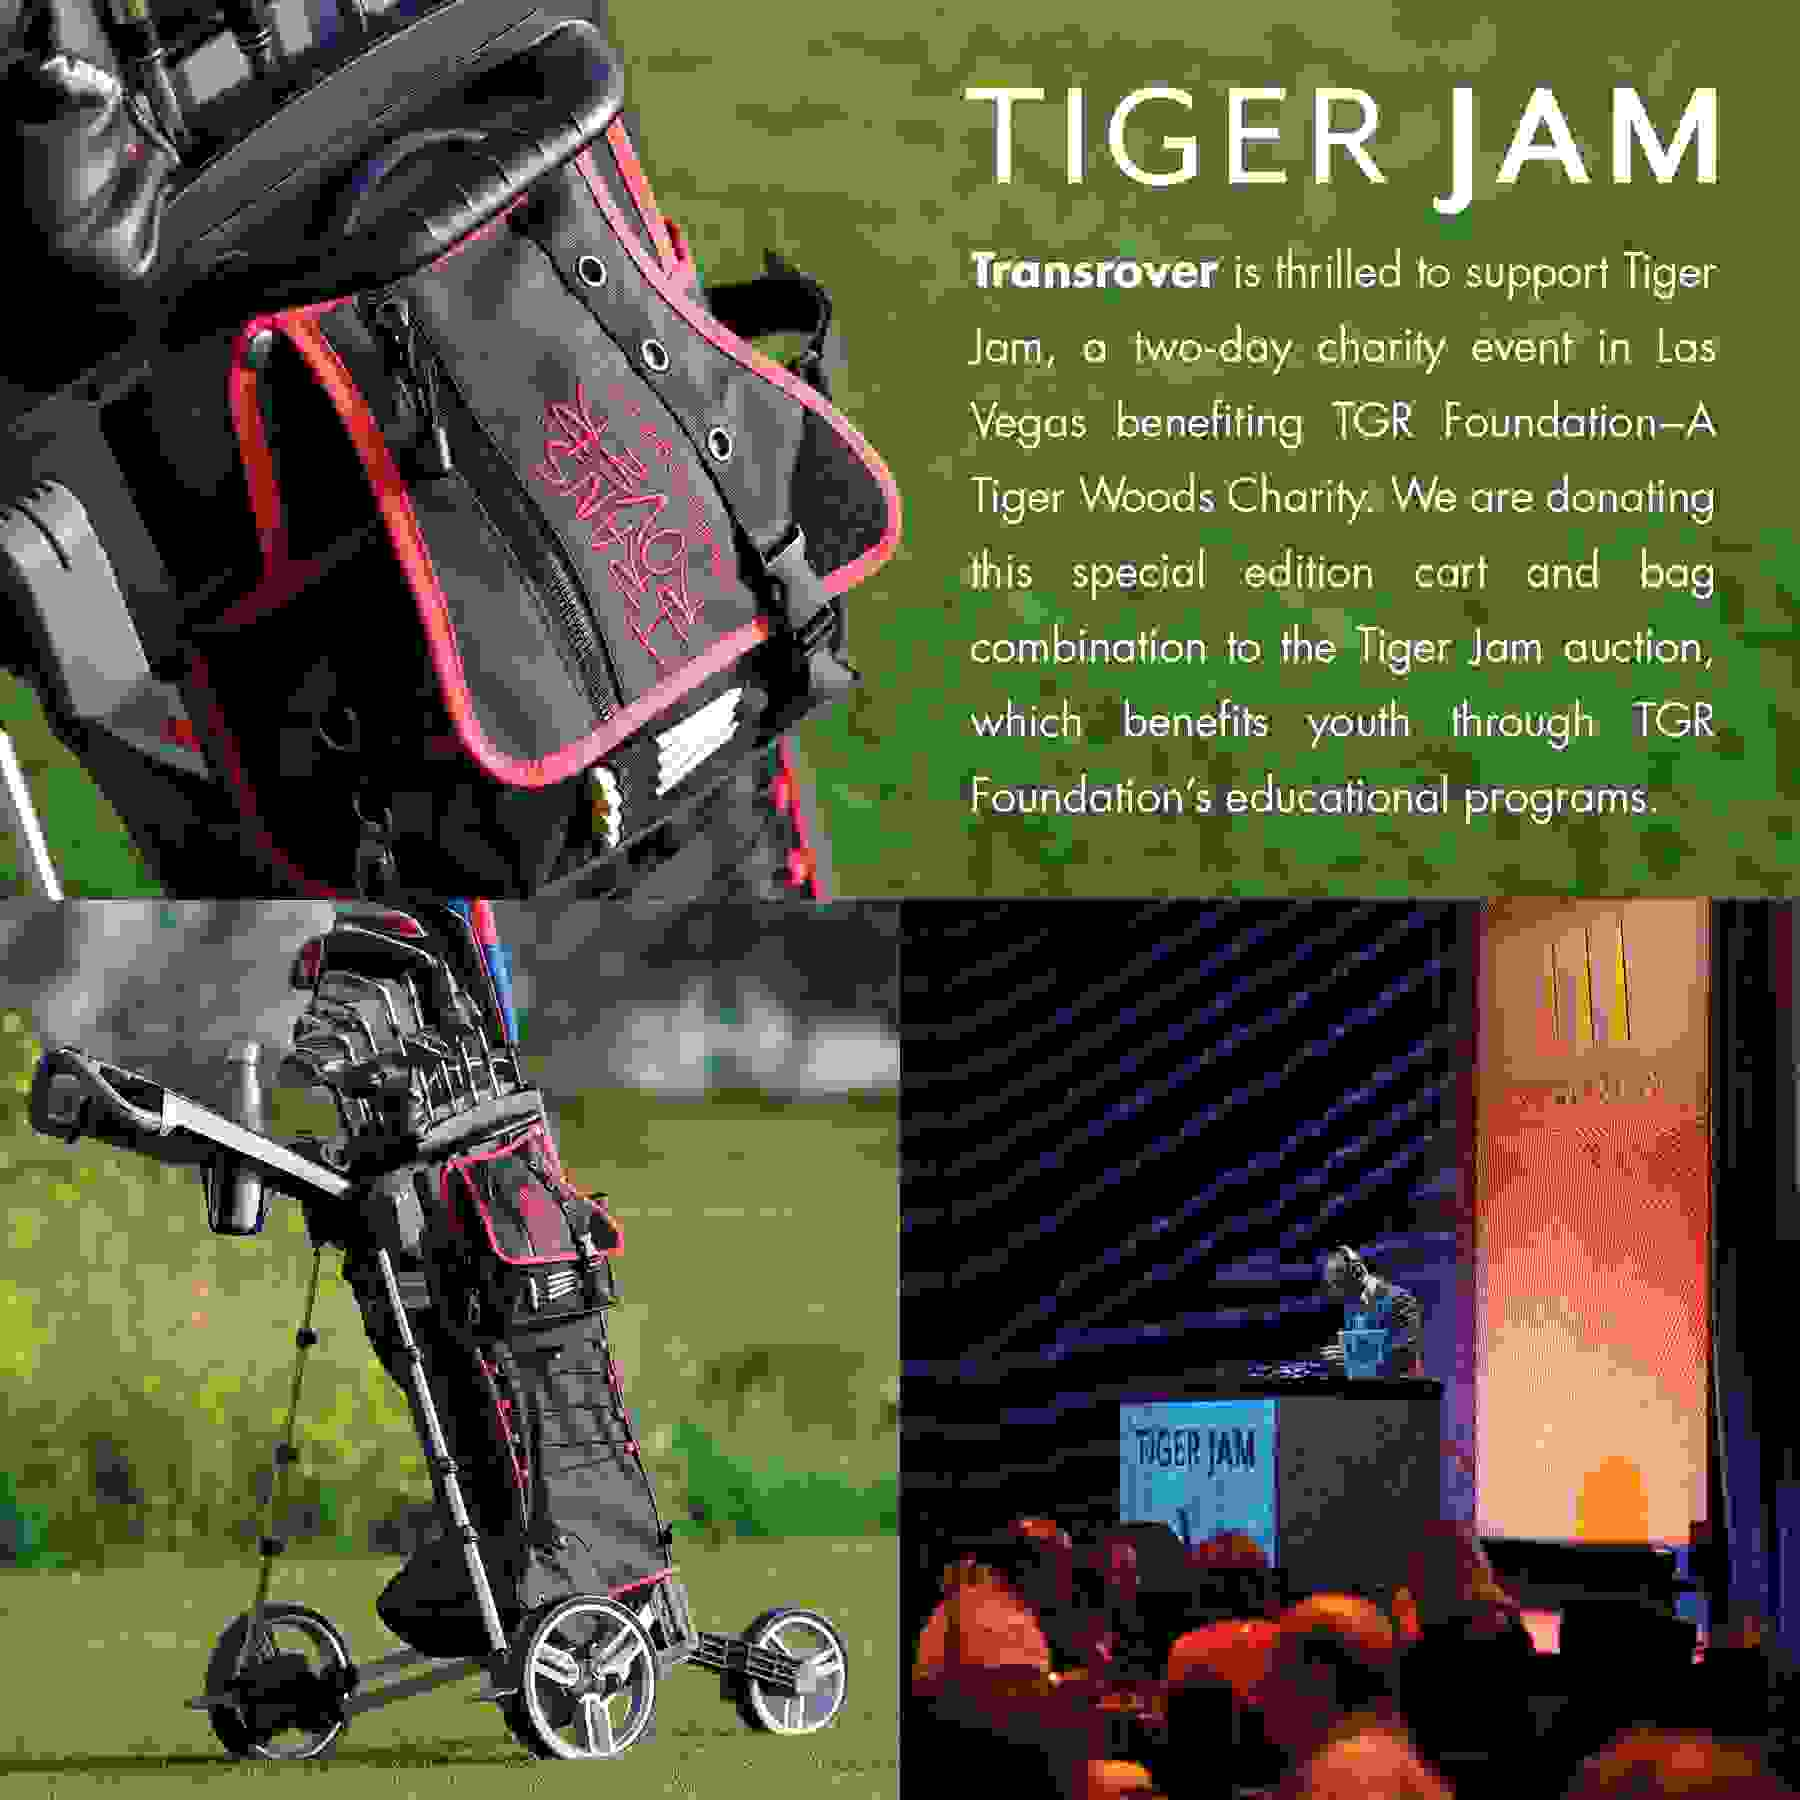 Transrover at Tiger Jam 2019